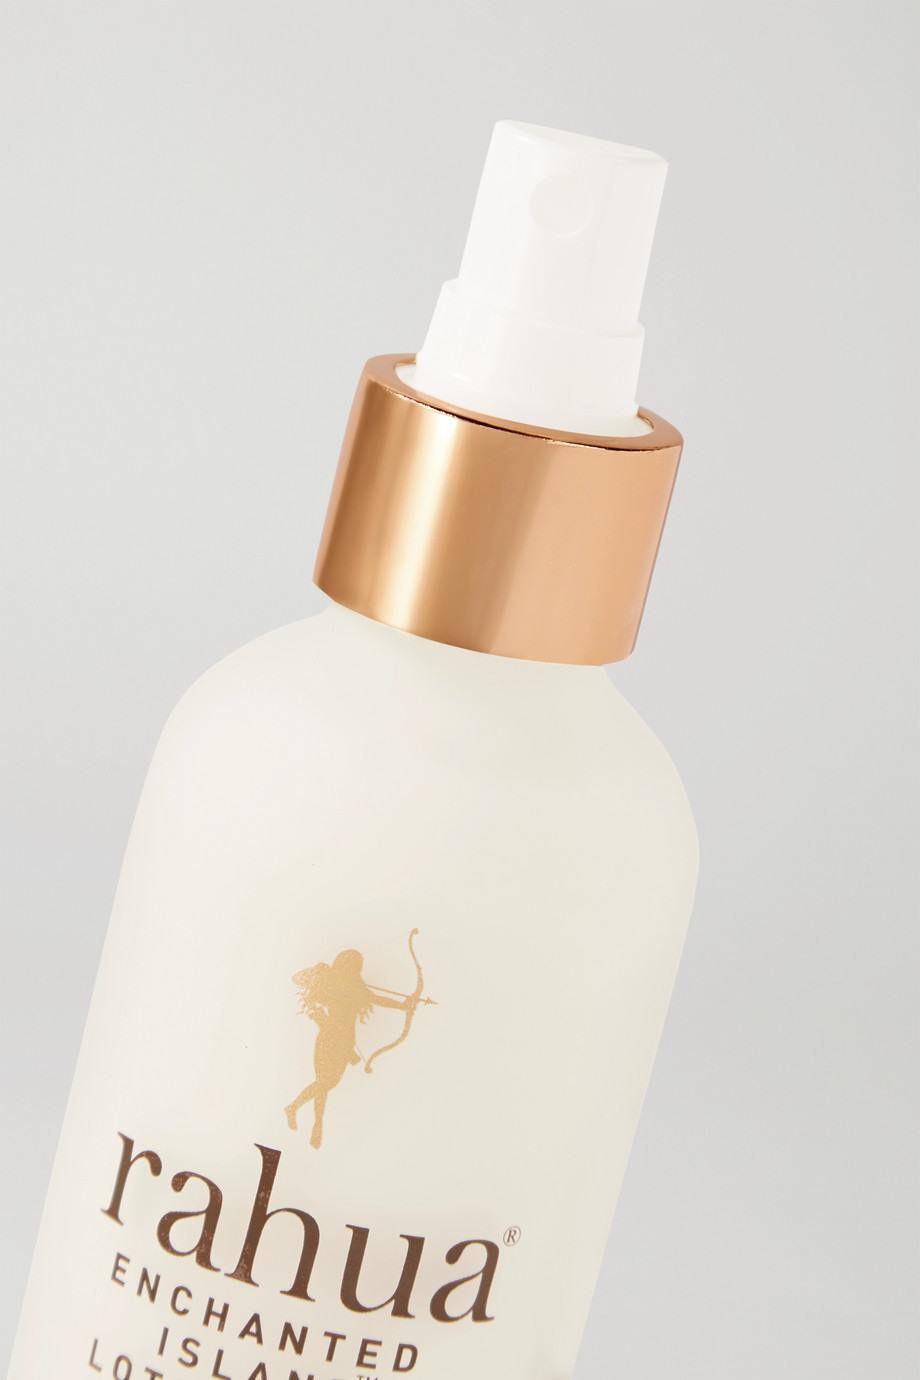 RAHUA Enchanted Island Lotion Mist, 124ml